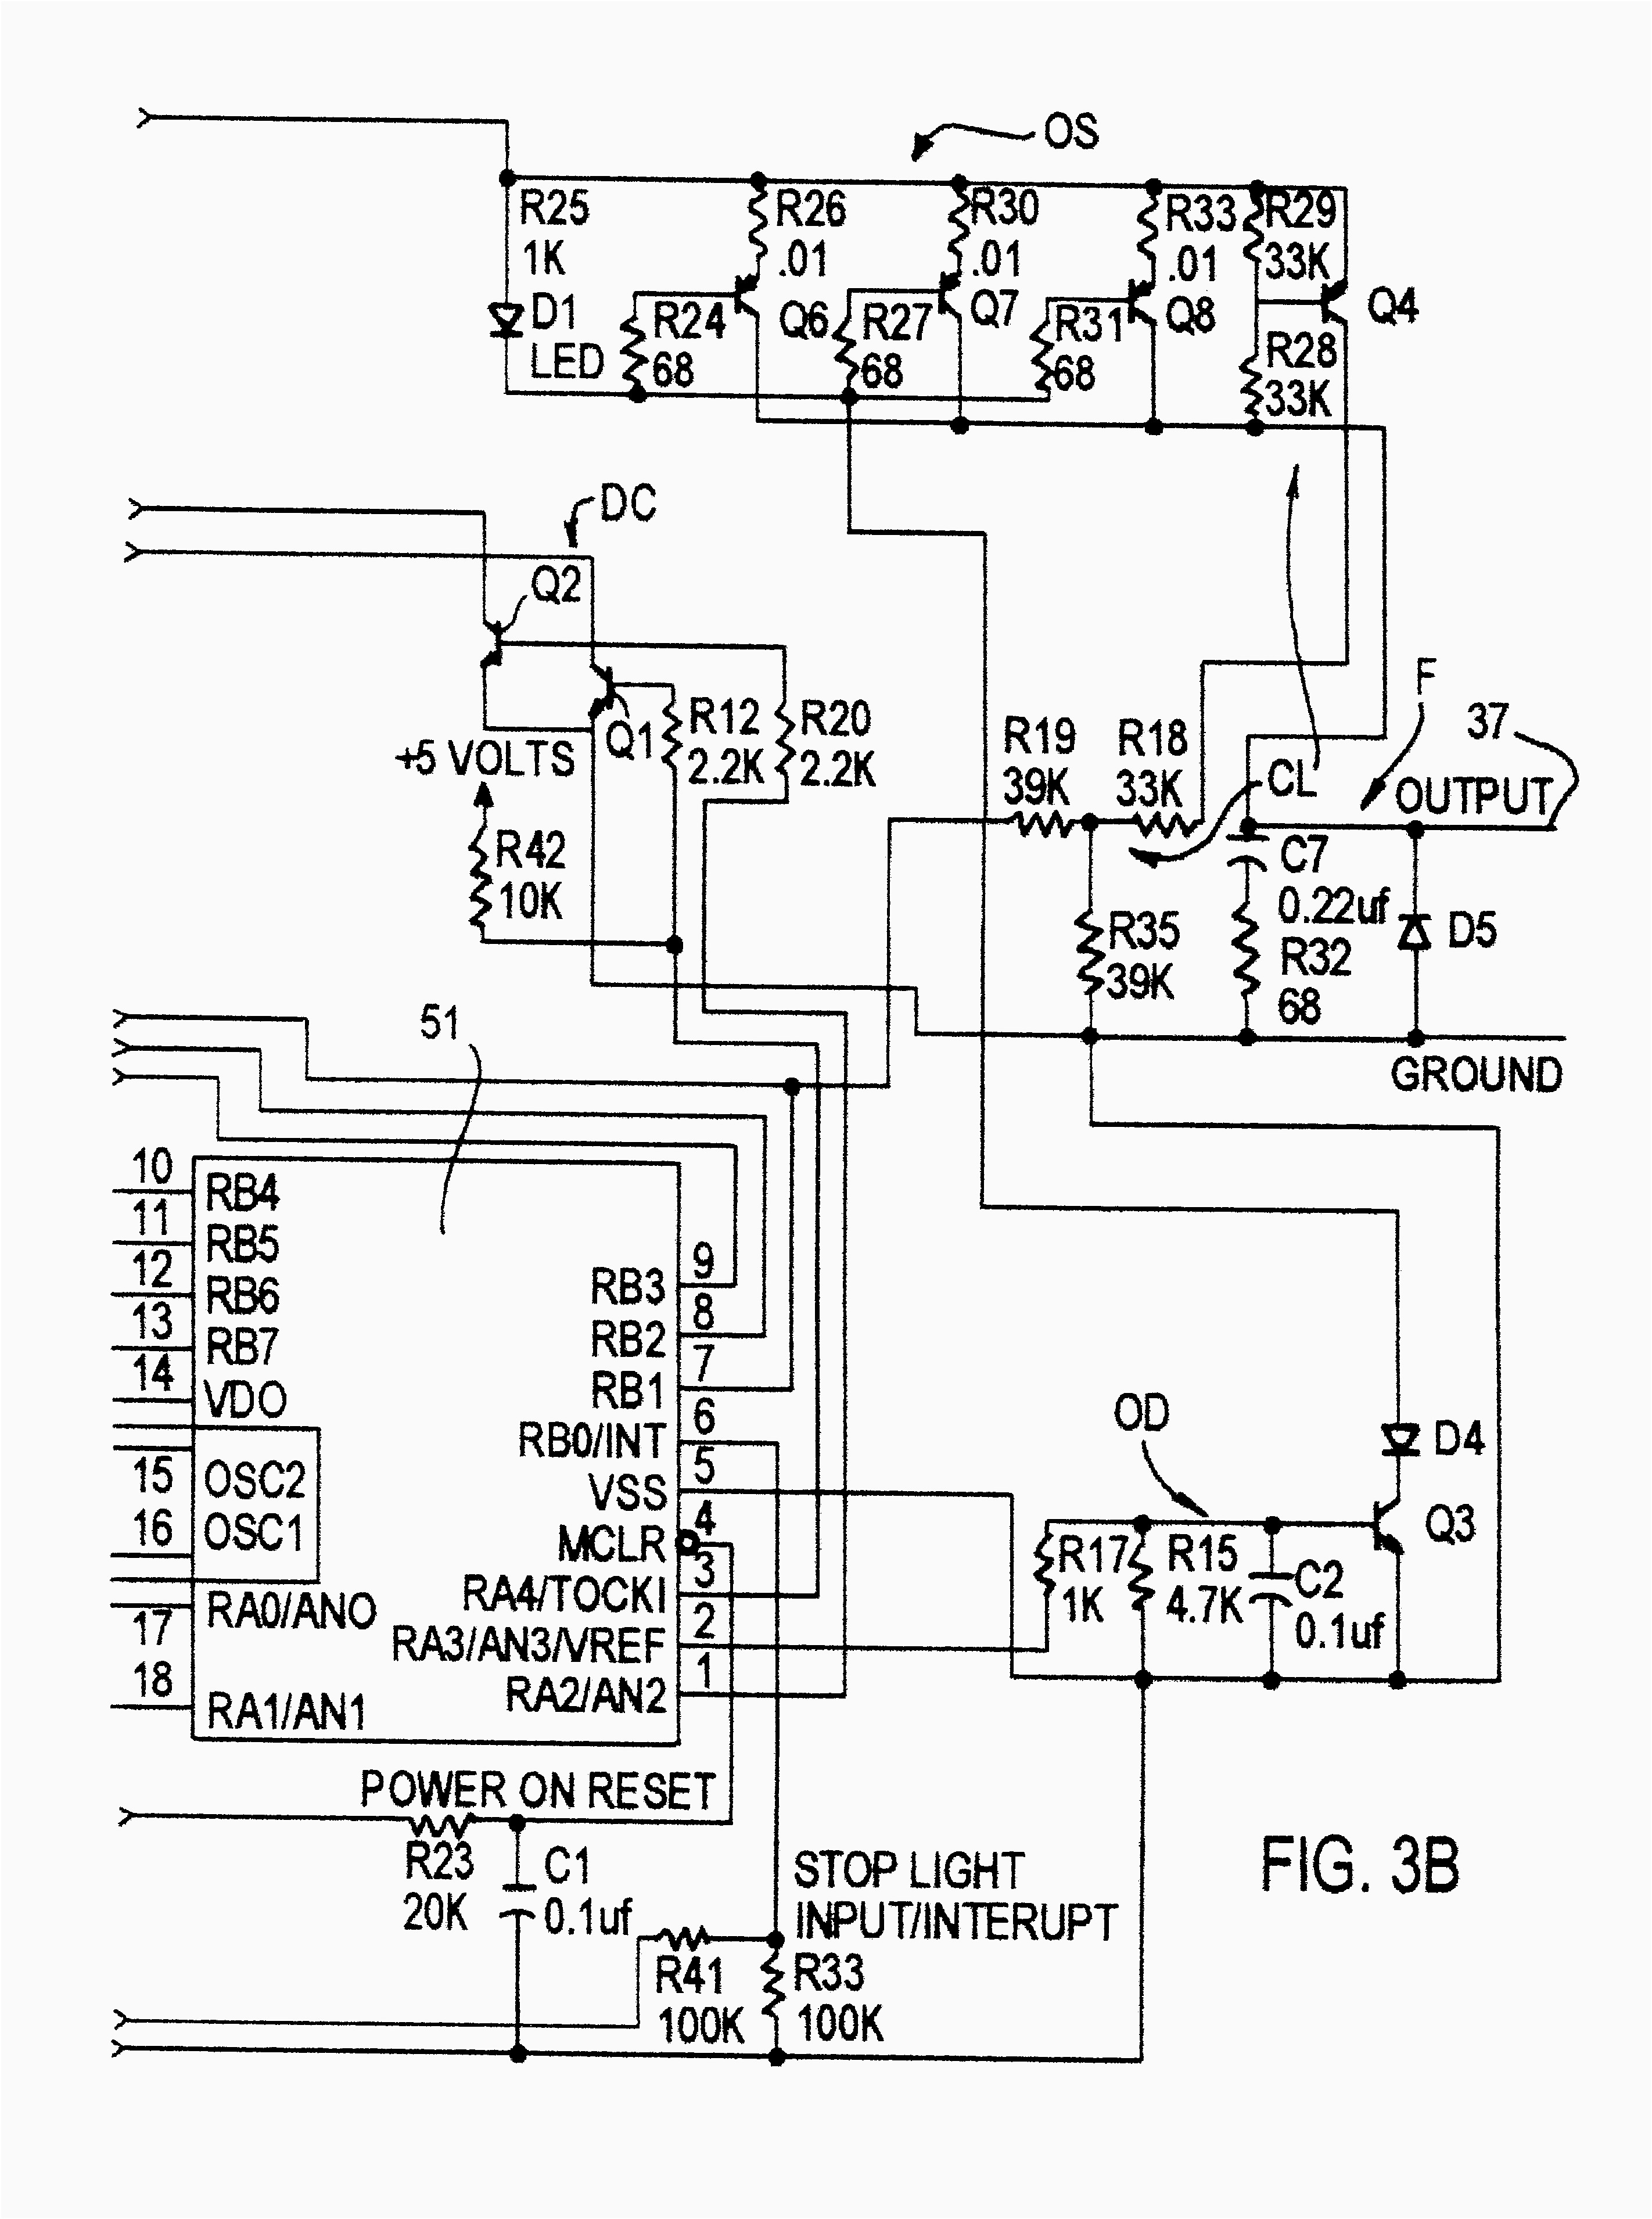 Love Controller Wiring Diagram - DIY Enthusiasts Wiring Diagrams •